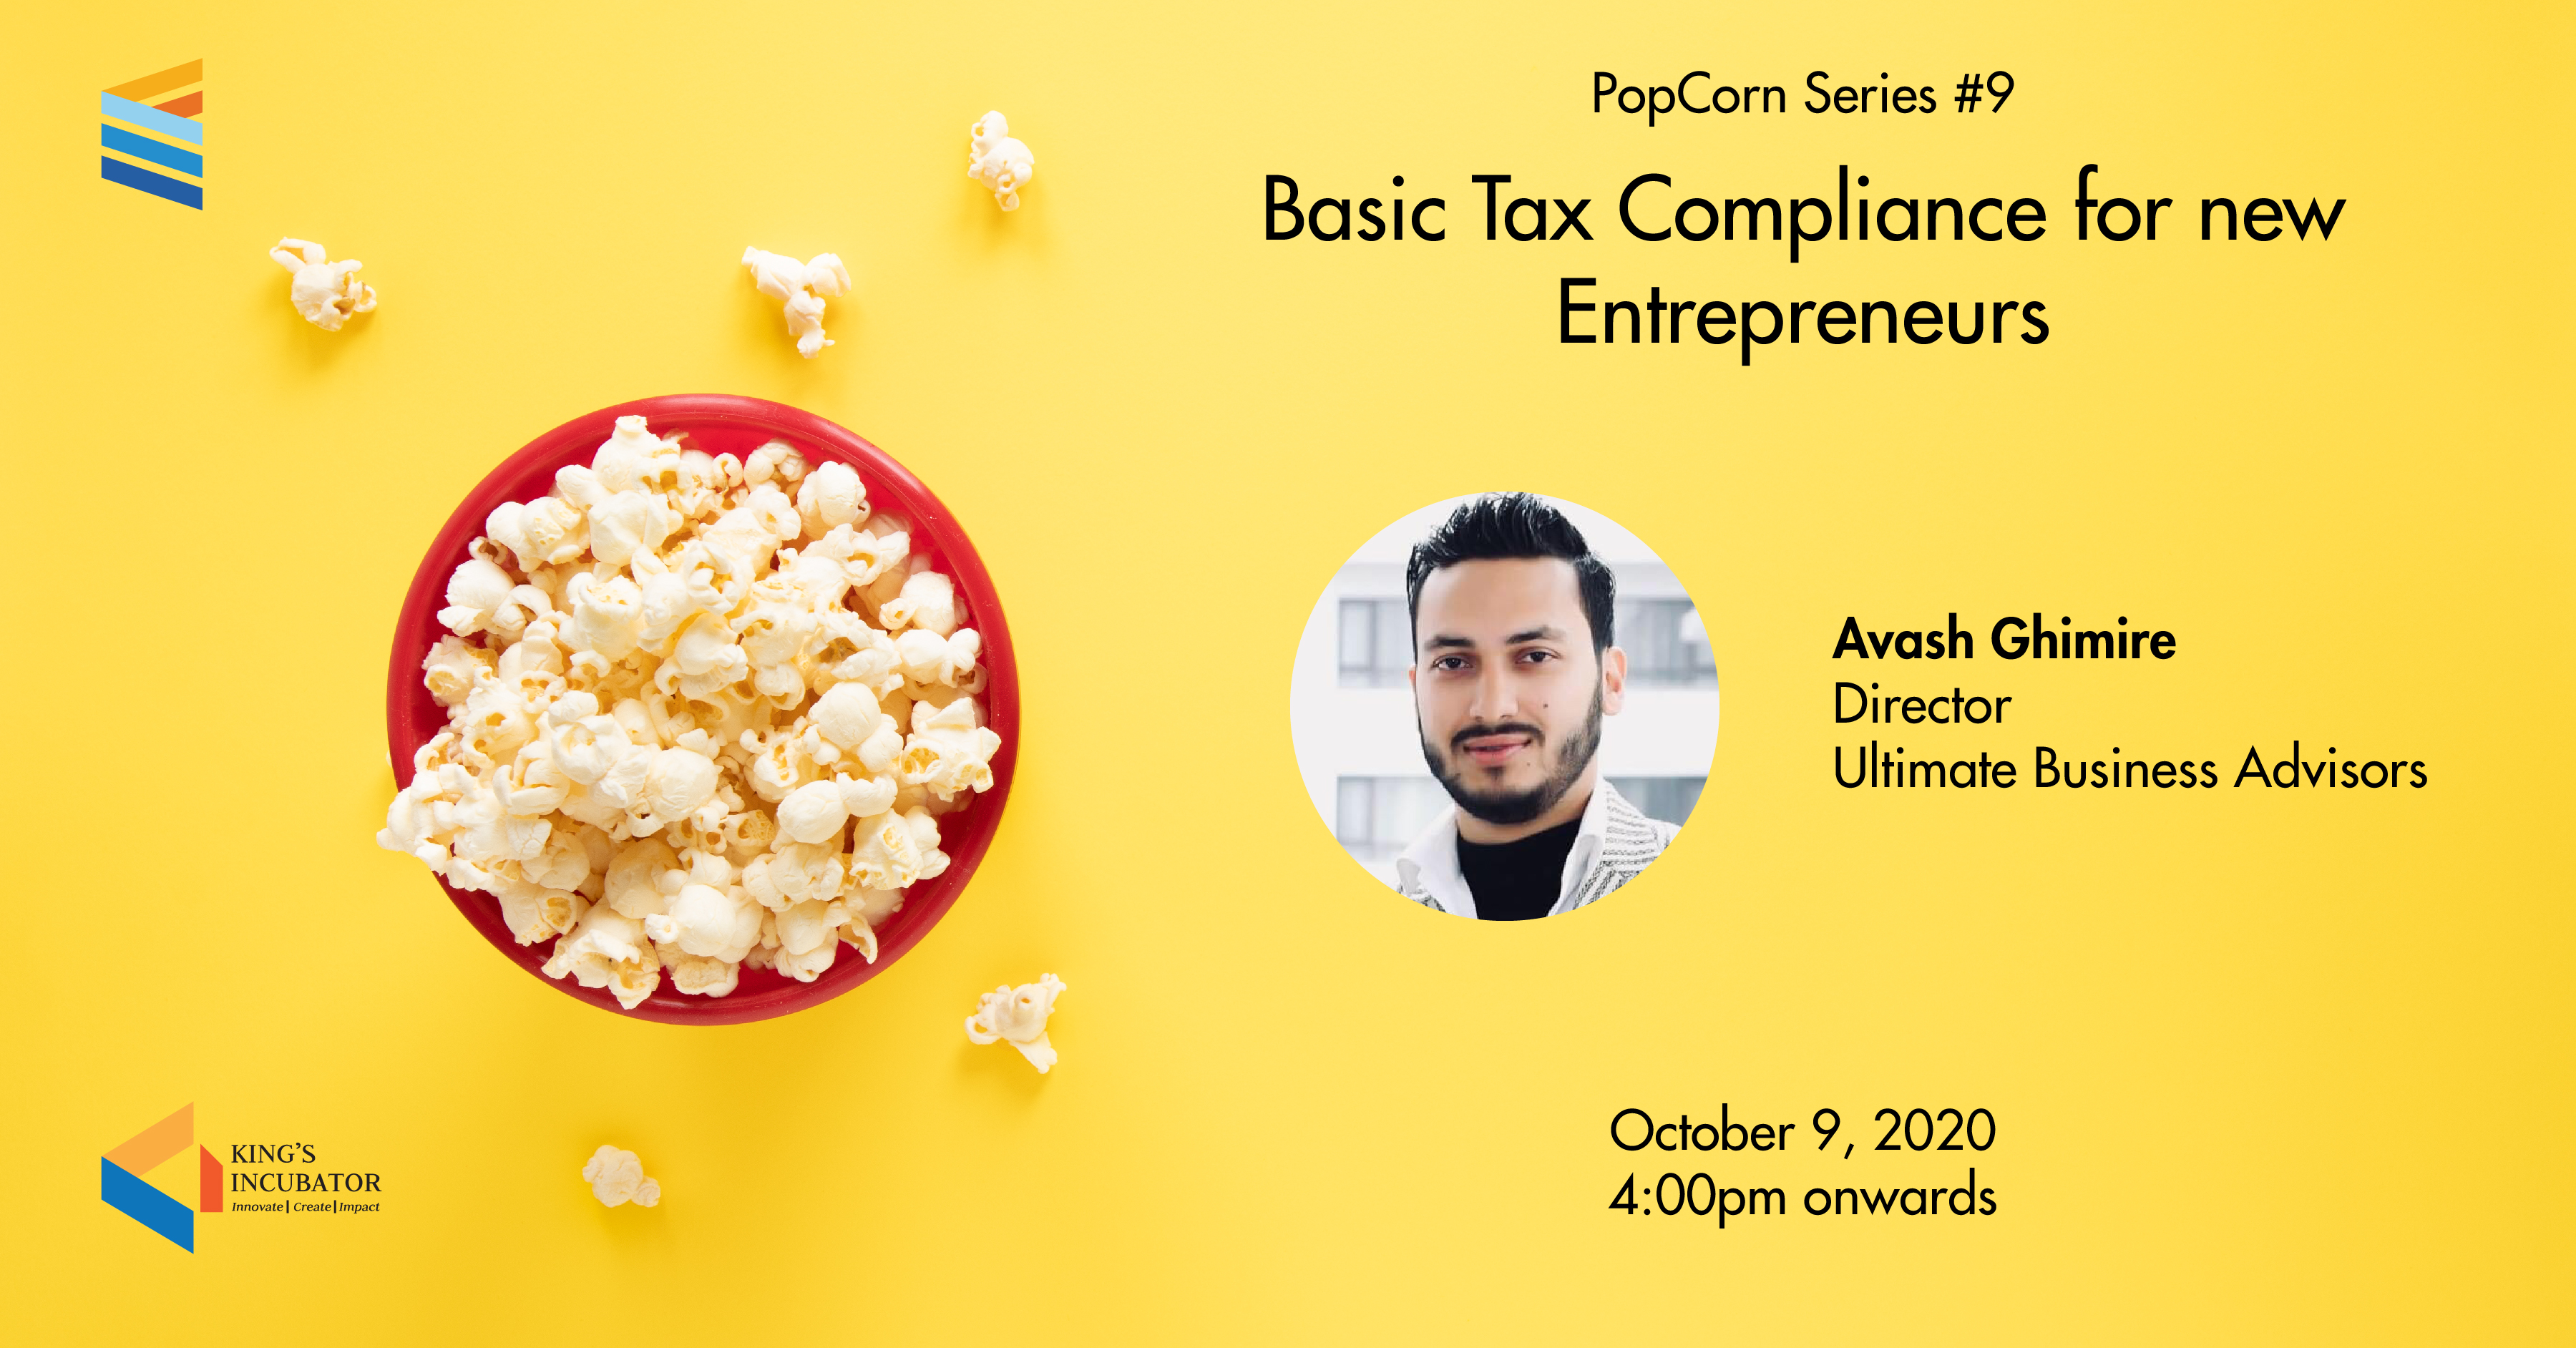 PopCorn Series 9: Basic Tax Compliance for New Entrepreneurs